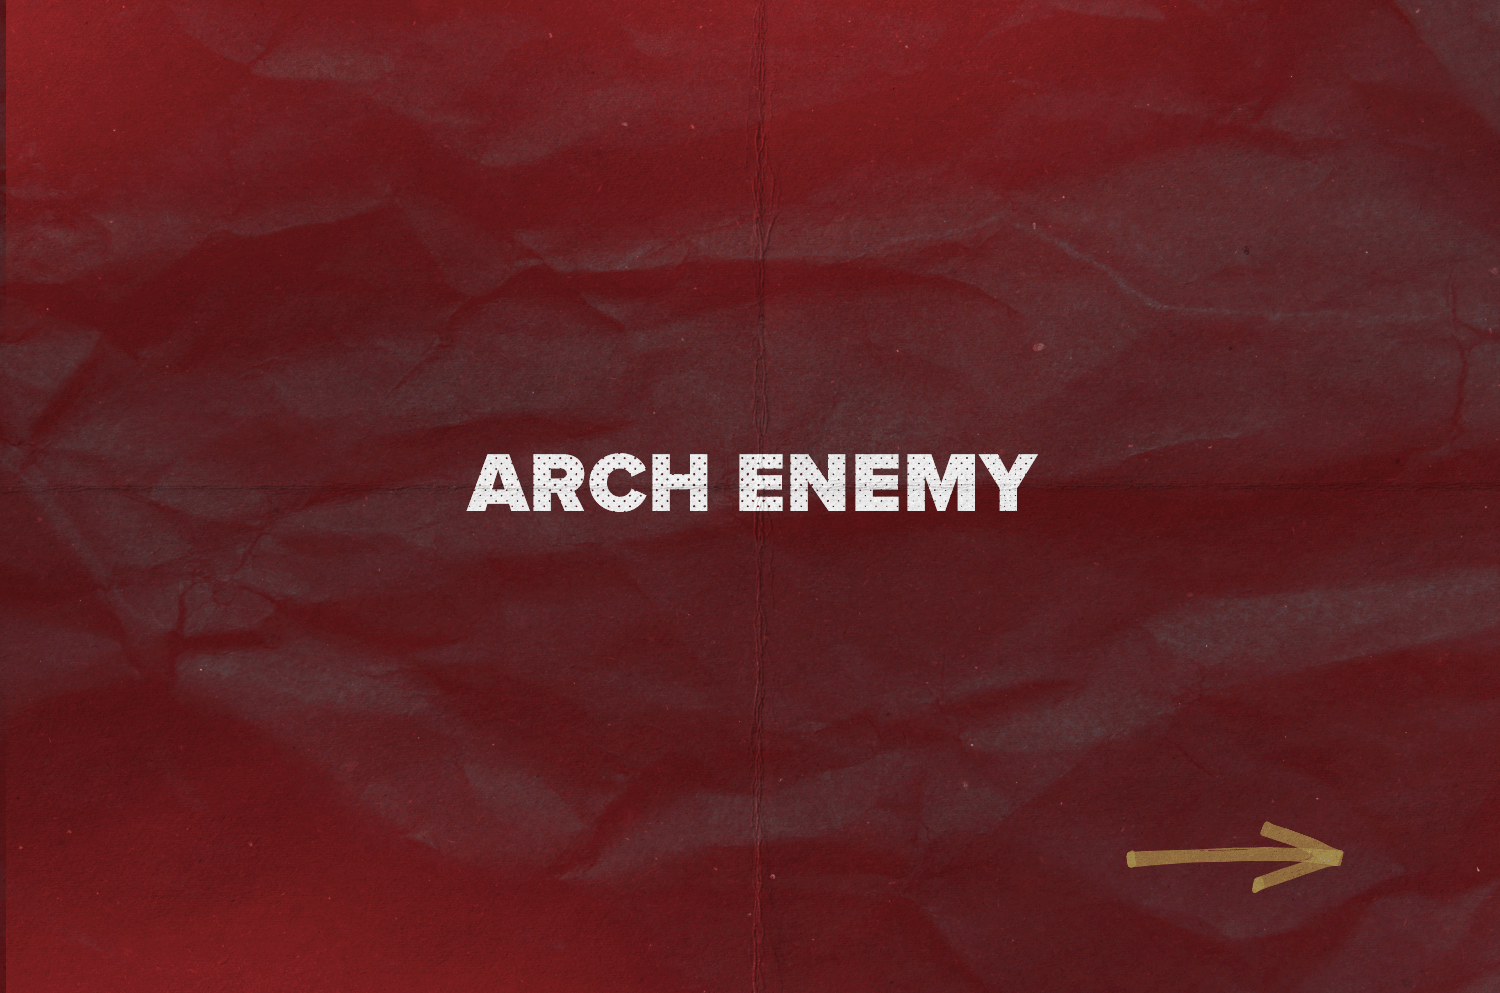 ArchEnemy_ImageGalleryTitleCard.png